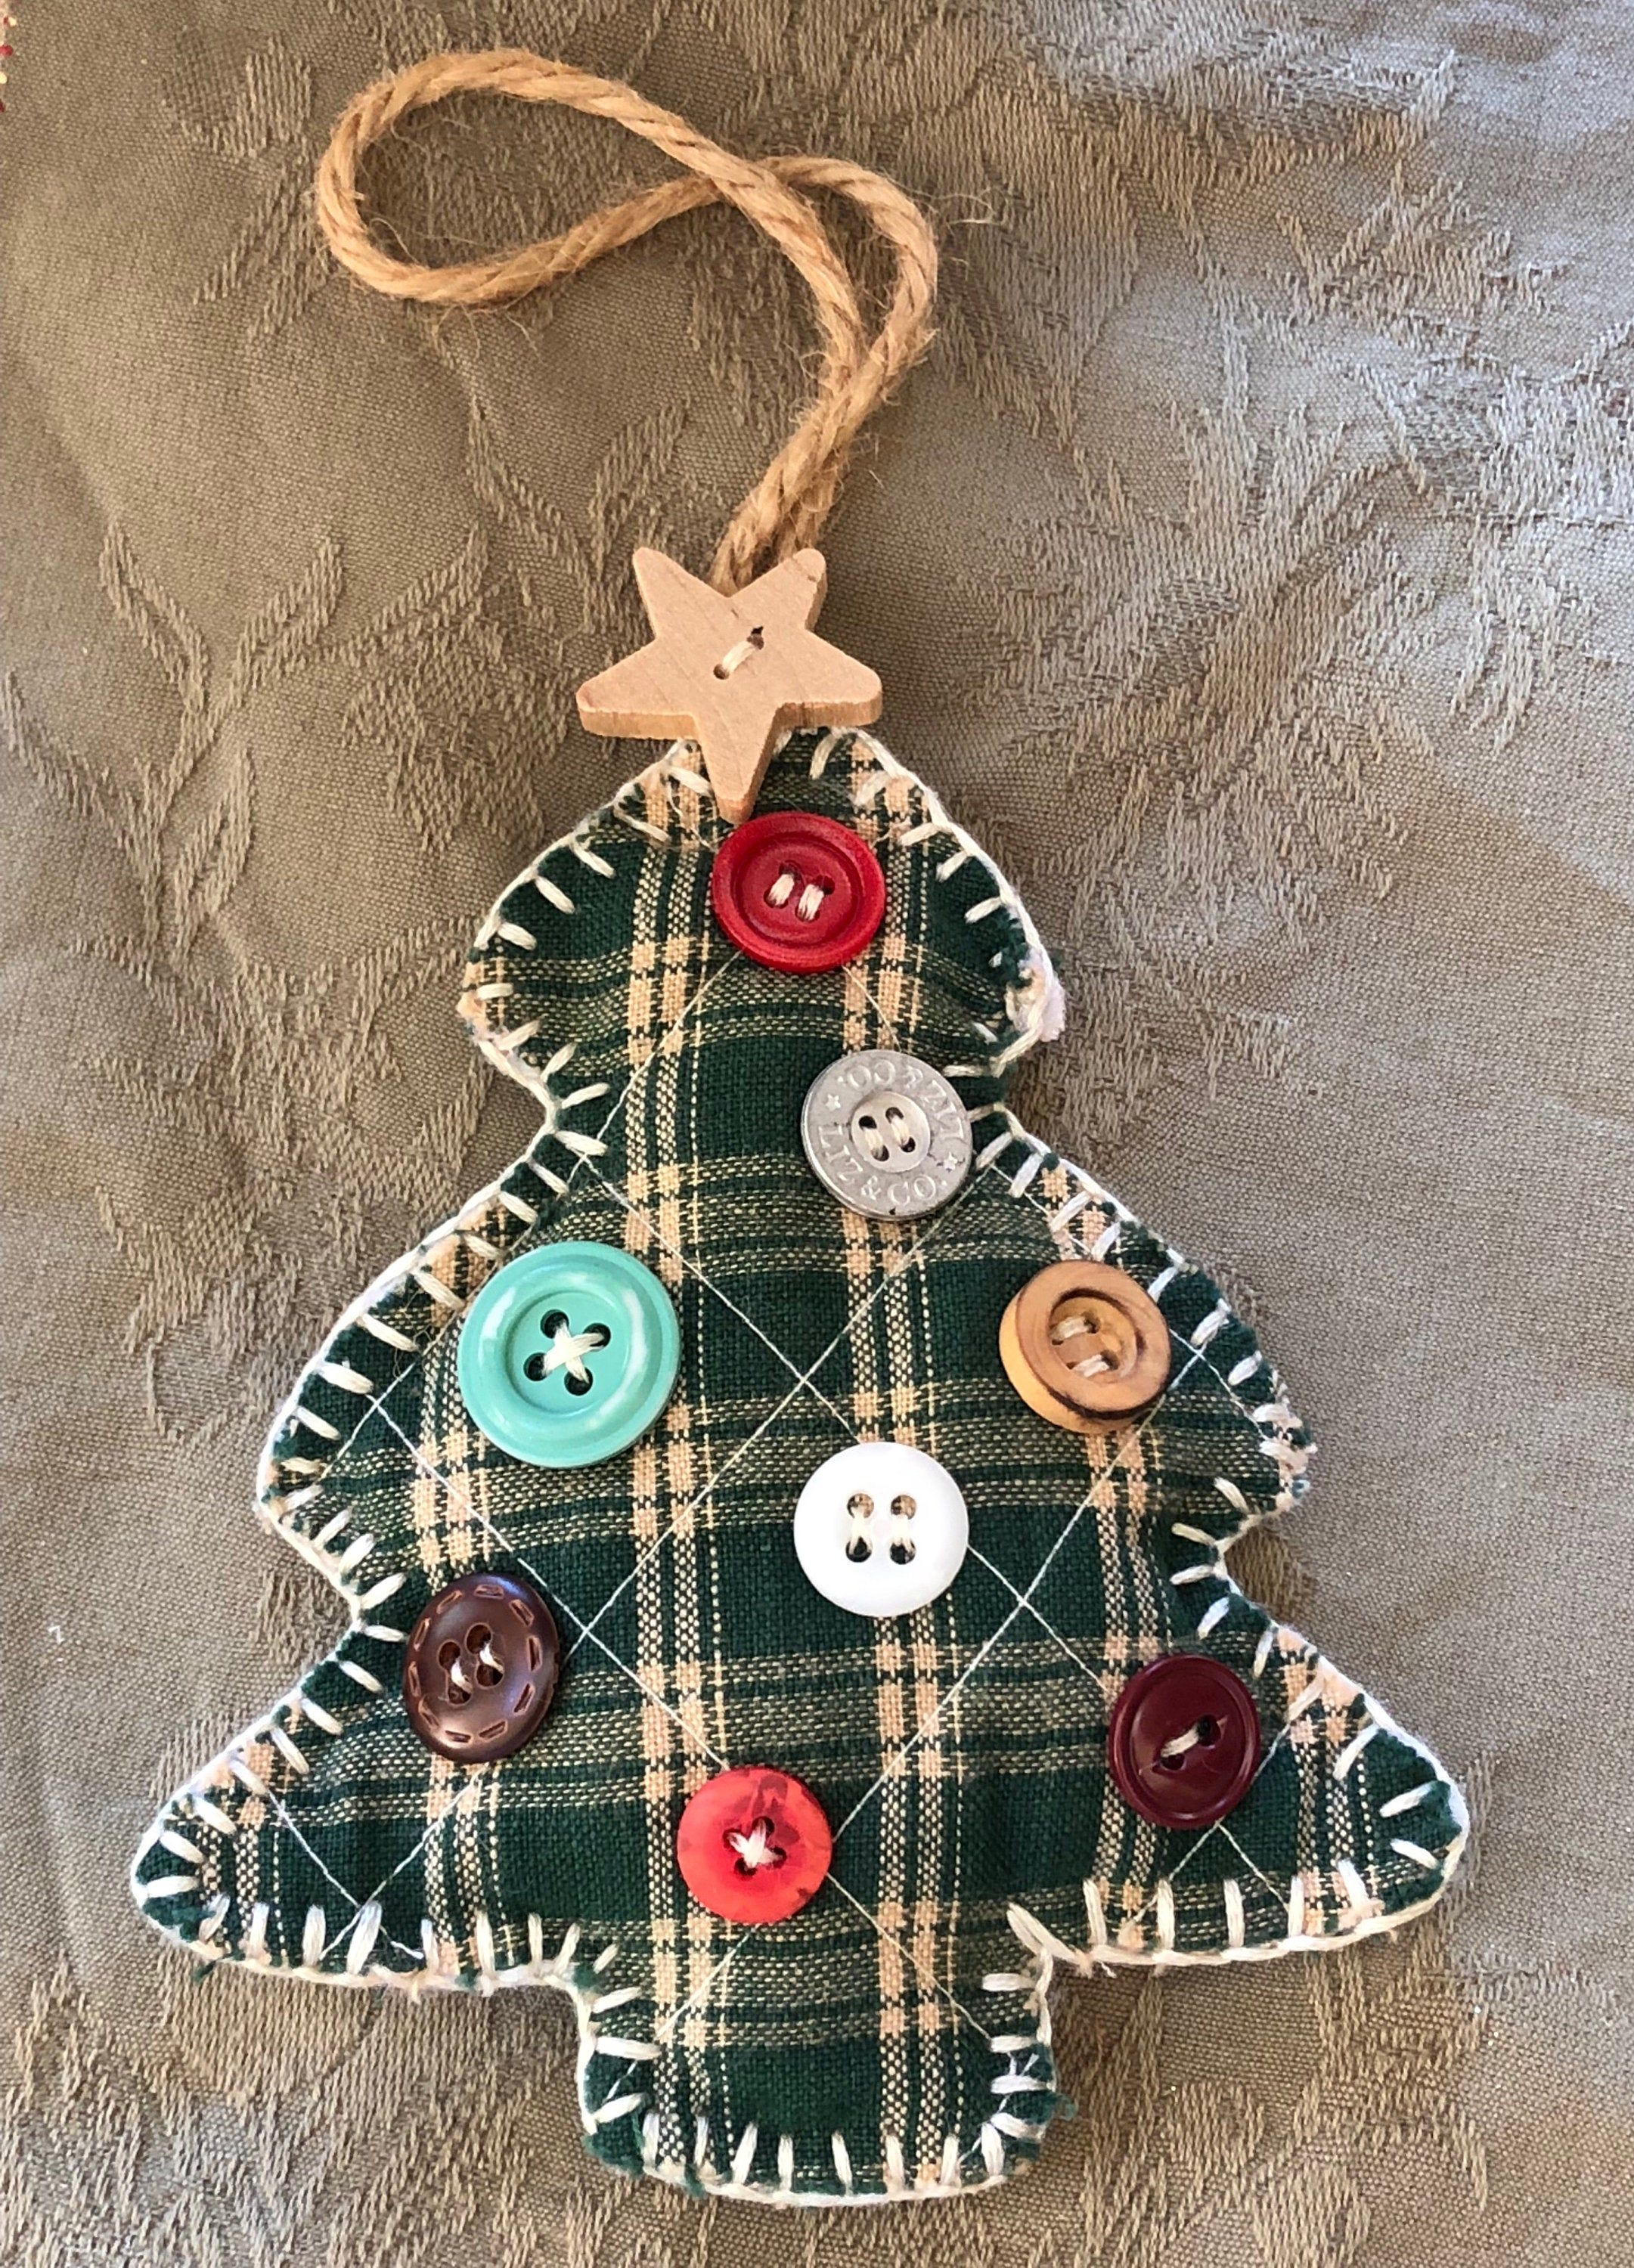 Vintage Hand Made Christmas Tree Ornament, Decorated With Buttons, Christmas Decoration, Trim A Tree, Holiday Decor, Vintage Ornament, Gift